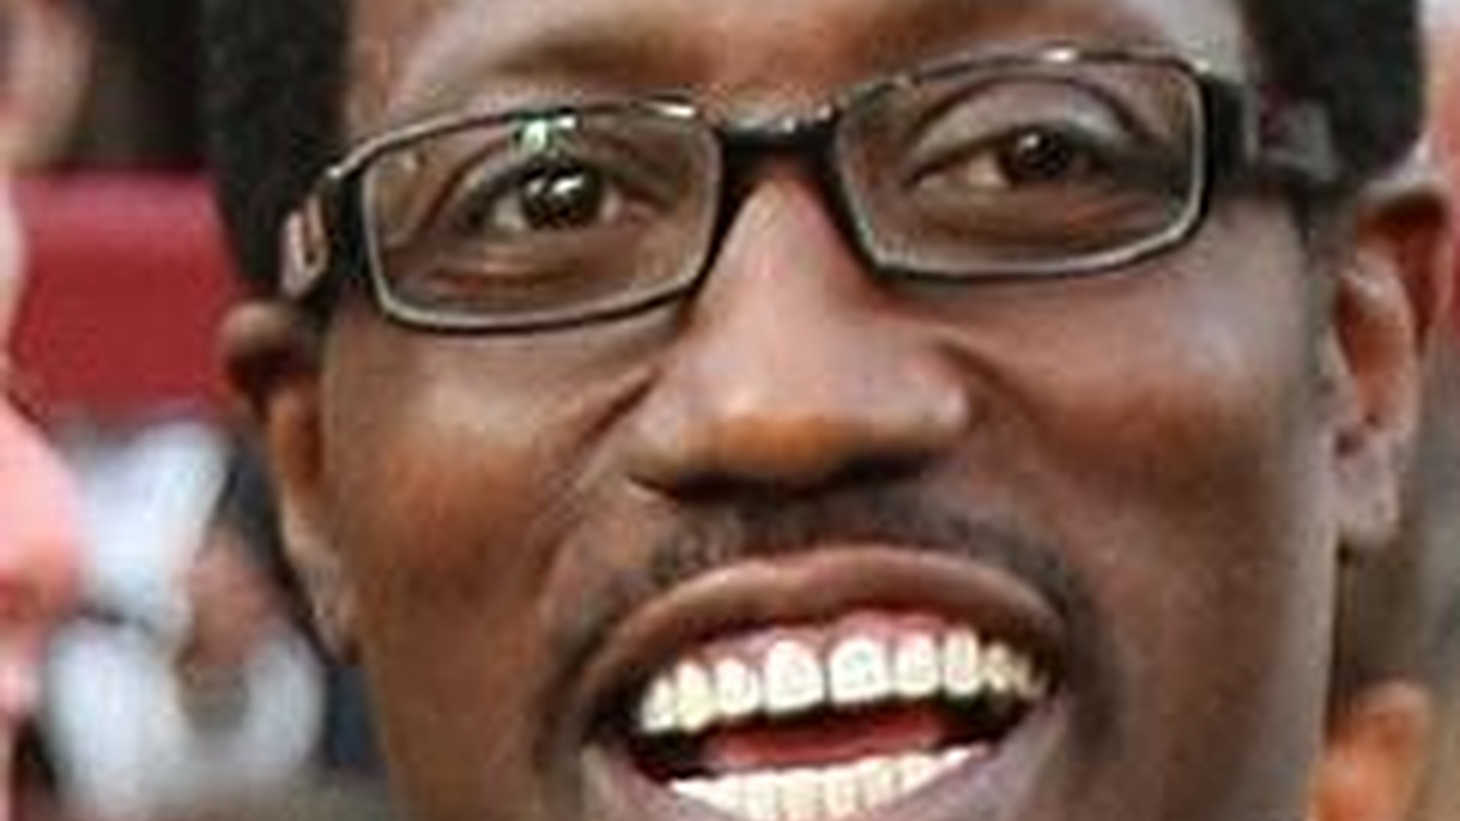 The tax rebates are going out today for those who paid Uncle Sam. But actor Wesley Snipes won't get one. He was acquitted of tax fraud, but convicted of failing to file federal tax returns for 3 years running. Also tonight, the shark warnings have been taken down after Friday's attack off San Diego.